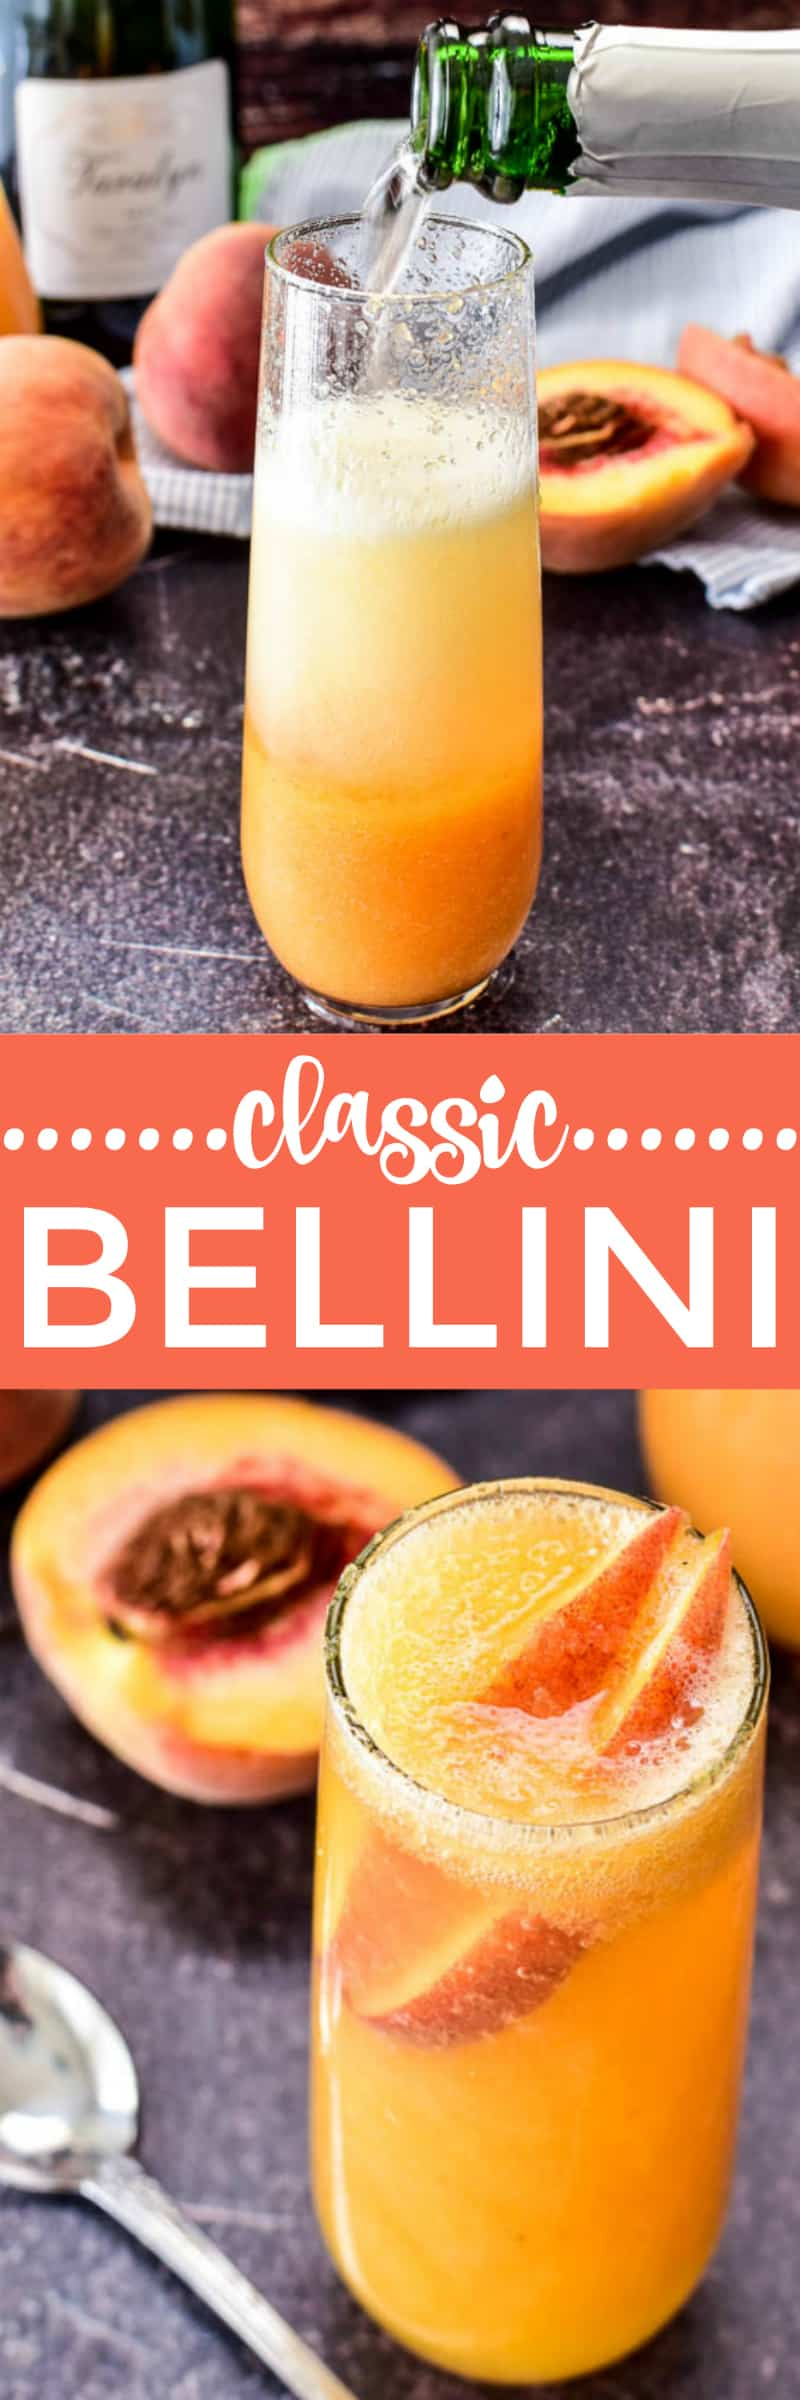 Bellini pour shot and finished cocktail